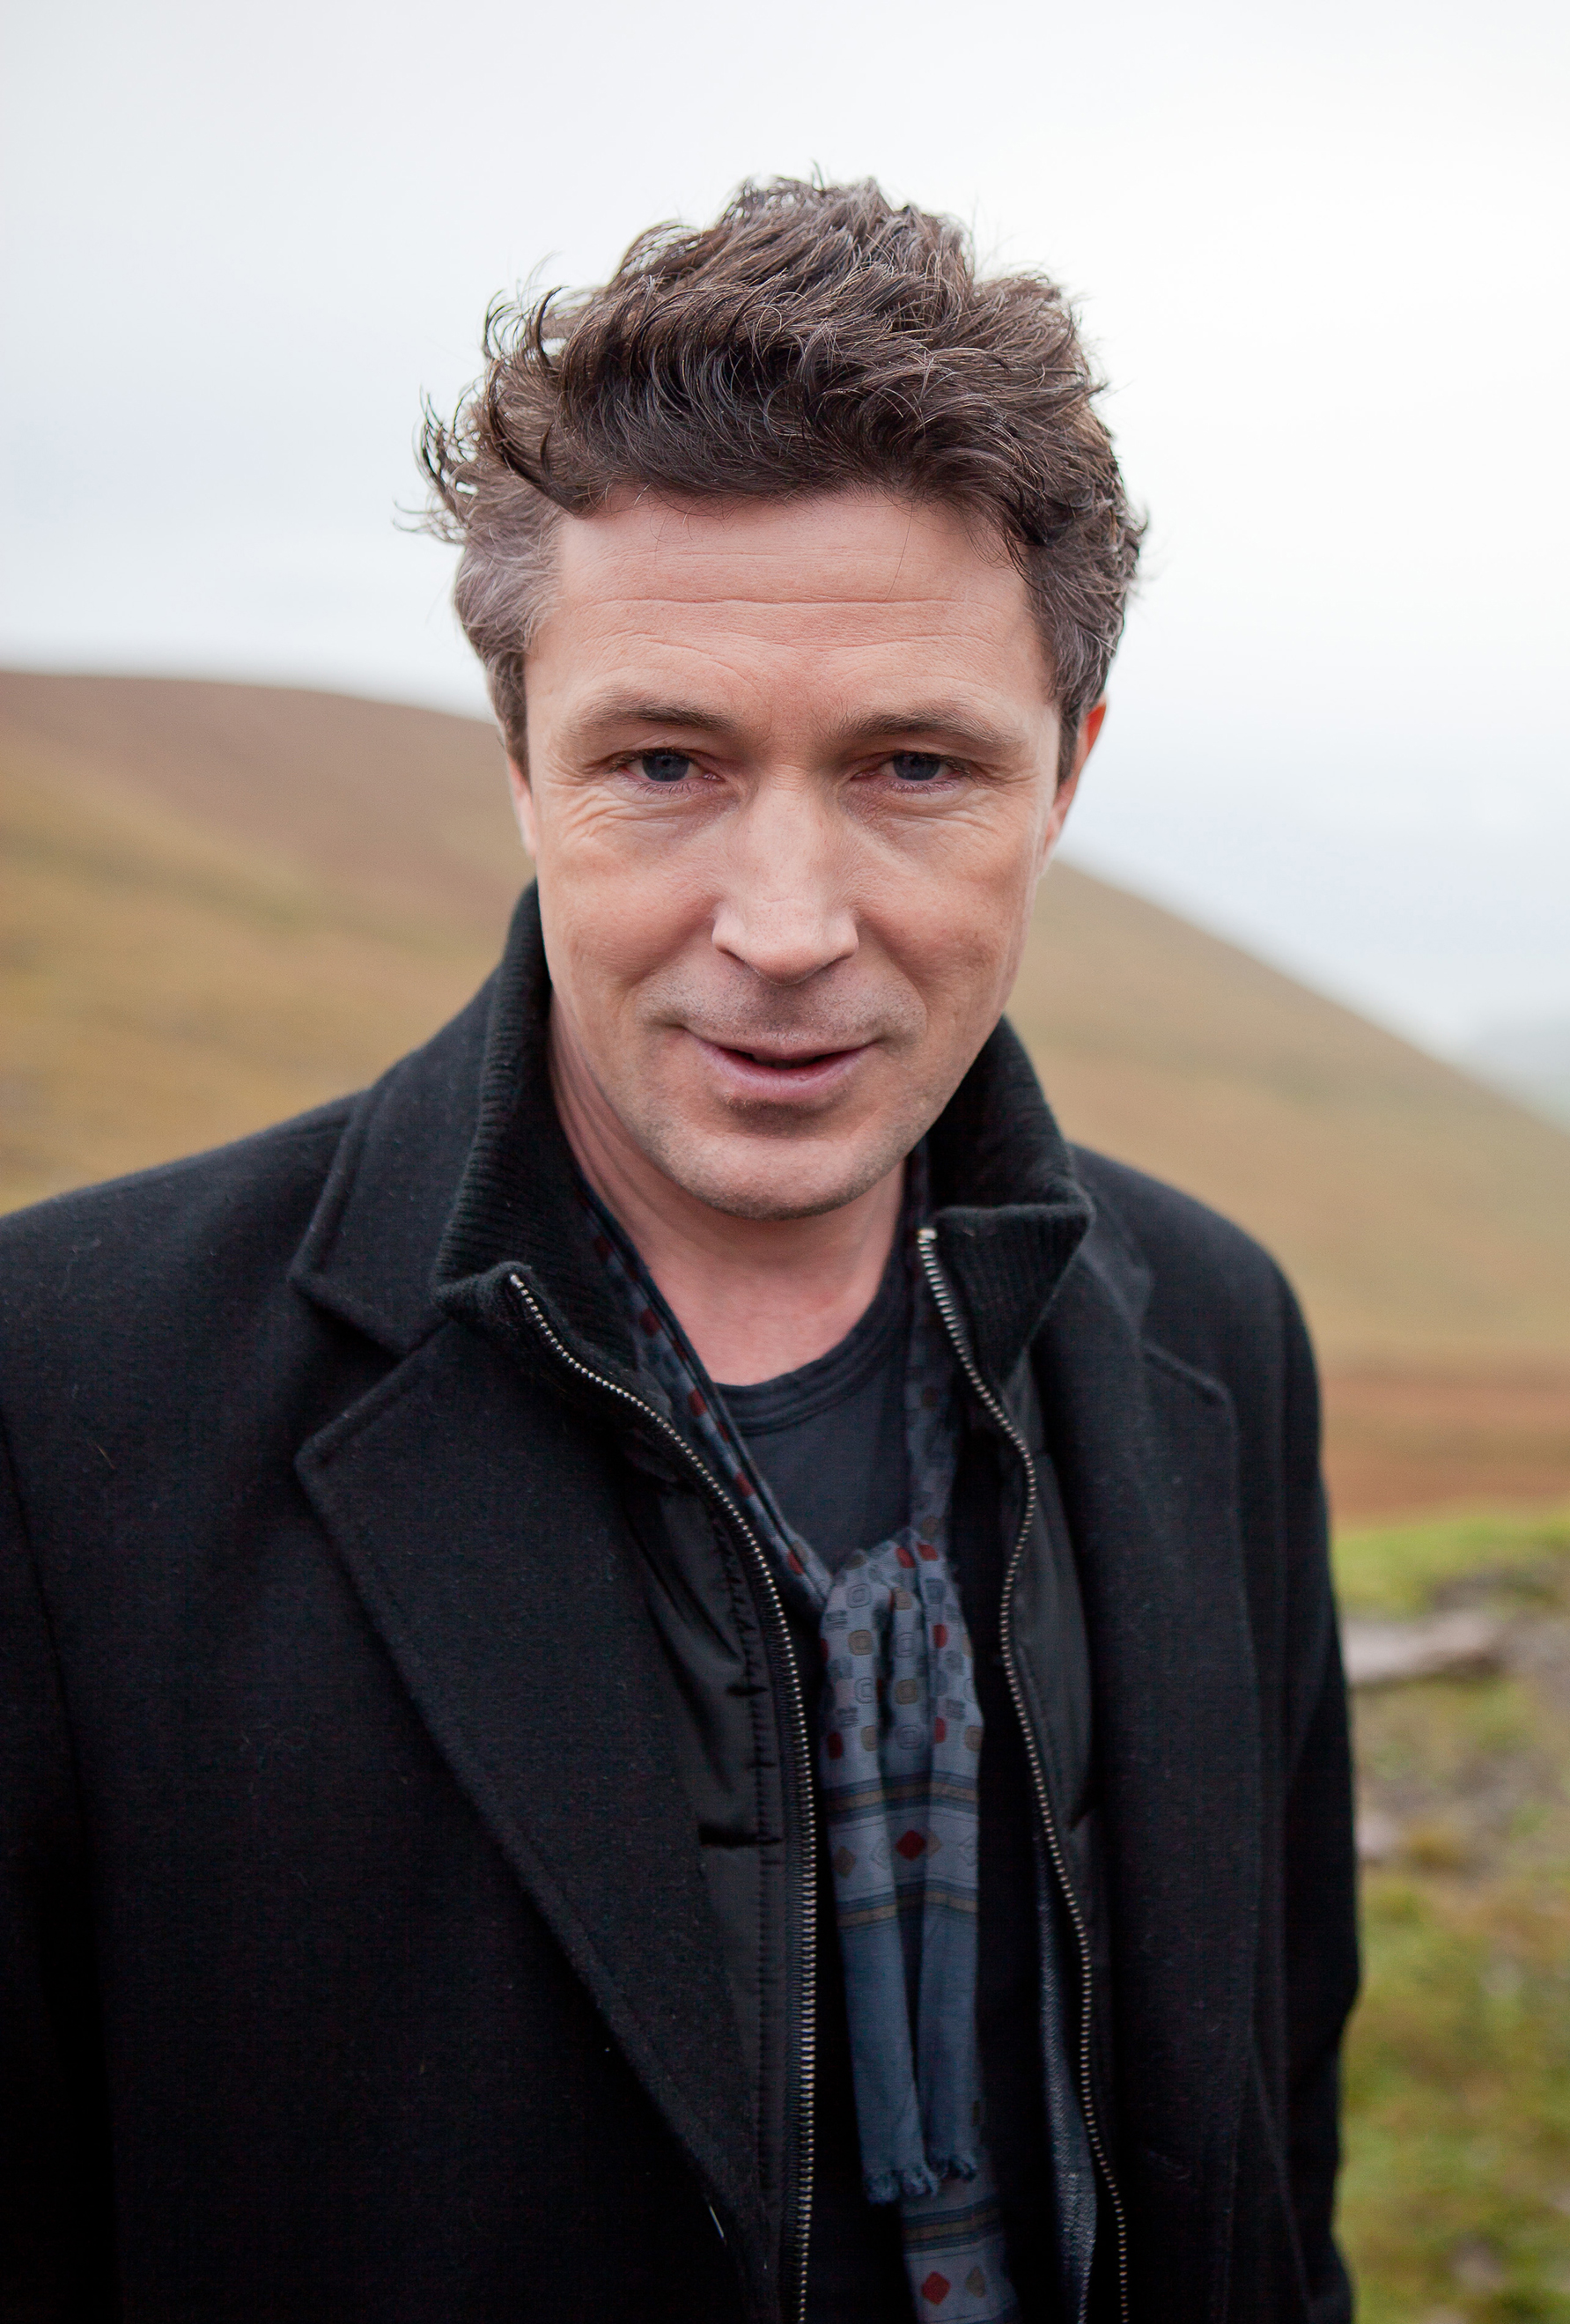 The 48-year old son of father (?) and mother(?), 178 cm tall Aidan Gillen in 2017 photo